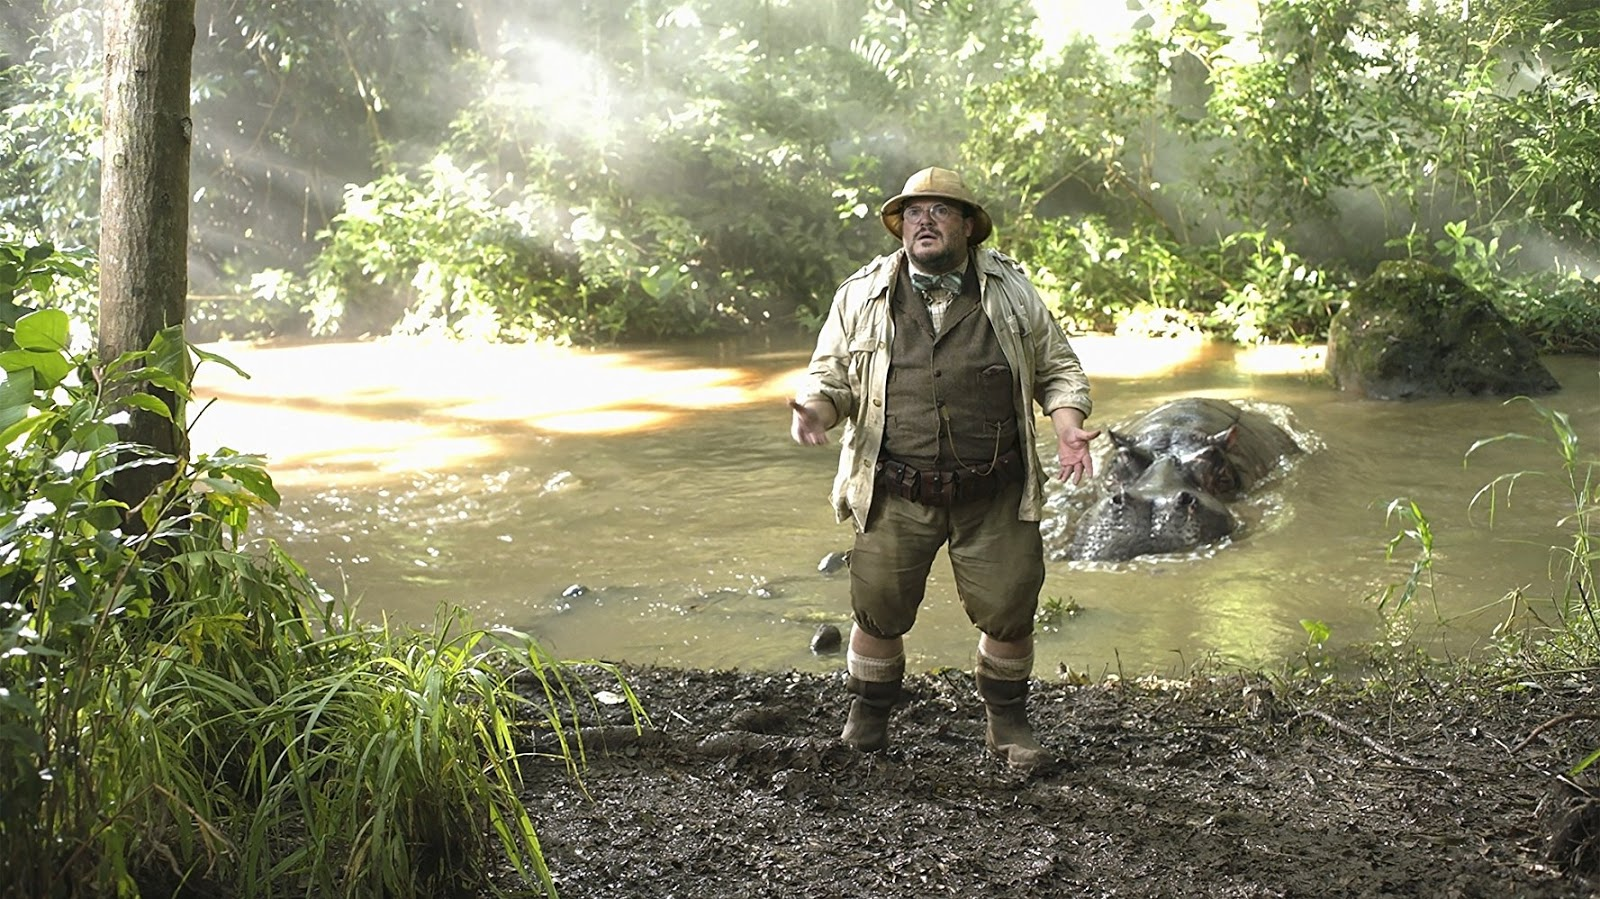 Movie Review - Jumanji: Welcome to the Jungle